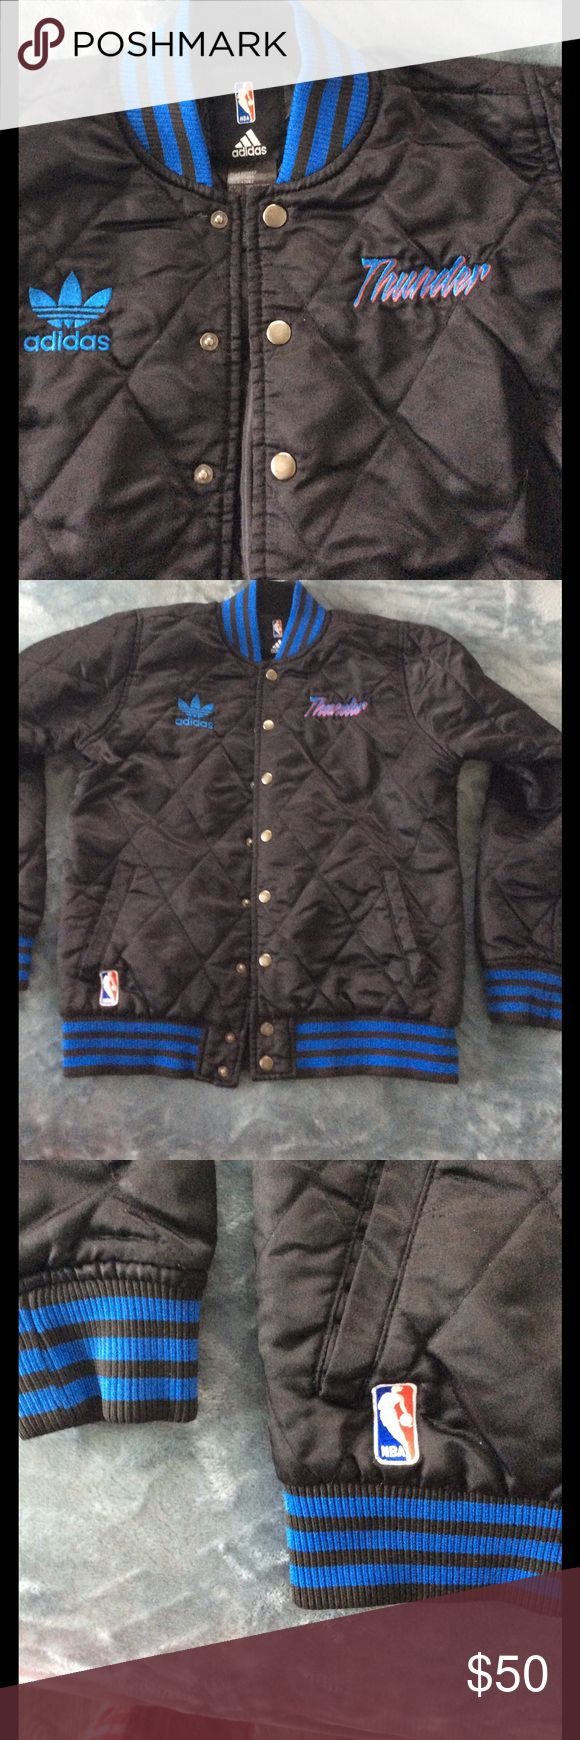 Adidas NBA OKC Thunder jacket in black and blue Adidas NBA OKC Thunder jacket some wear and tear as pictured and stringy, overall looks good blue strips on black Adidas Jackets & Coats Raincoats